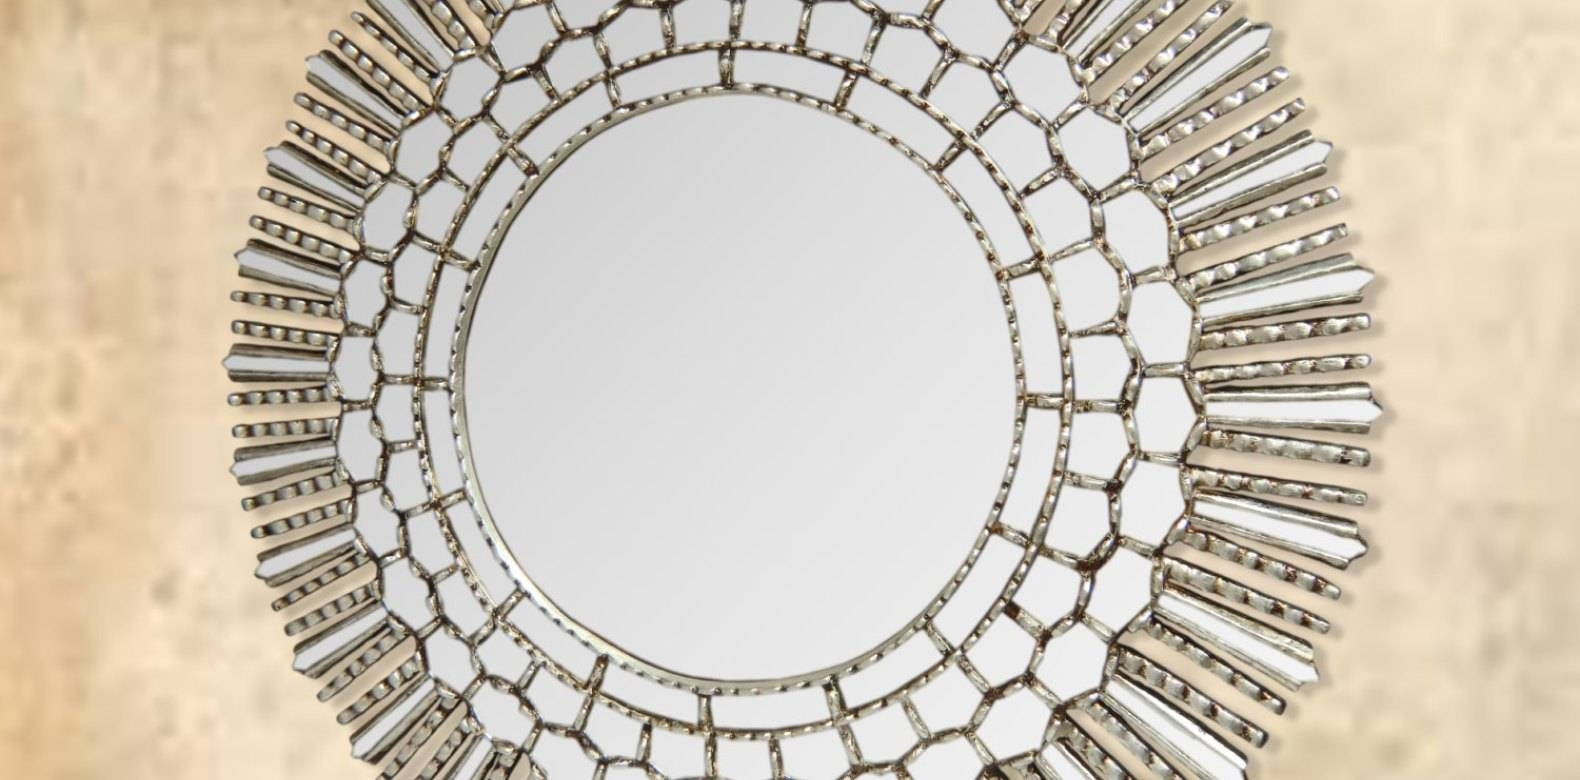 Mirror : Sensational Stunning Decorative Round Gold Mirrors Regarding Large Round Gold Mirrors (View 11 of 15)